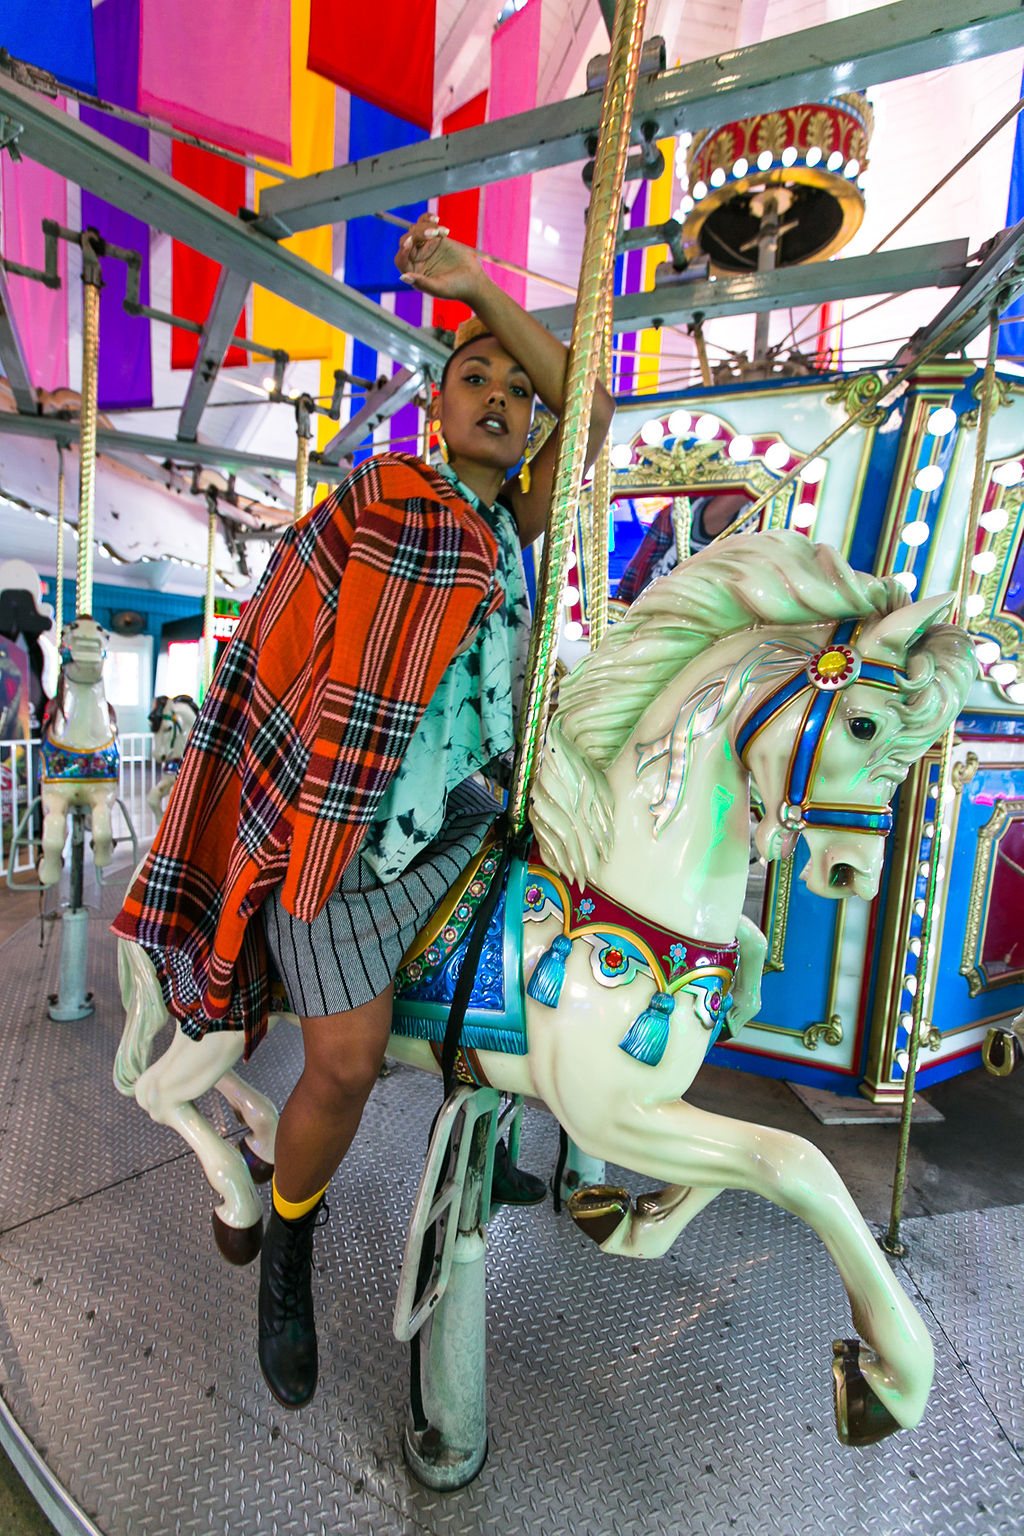 merry go round-fashion photoshoot-nordstrom rack-susina-long beach marina-rsee-xmmtt-wear who you are